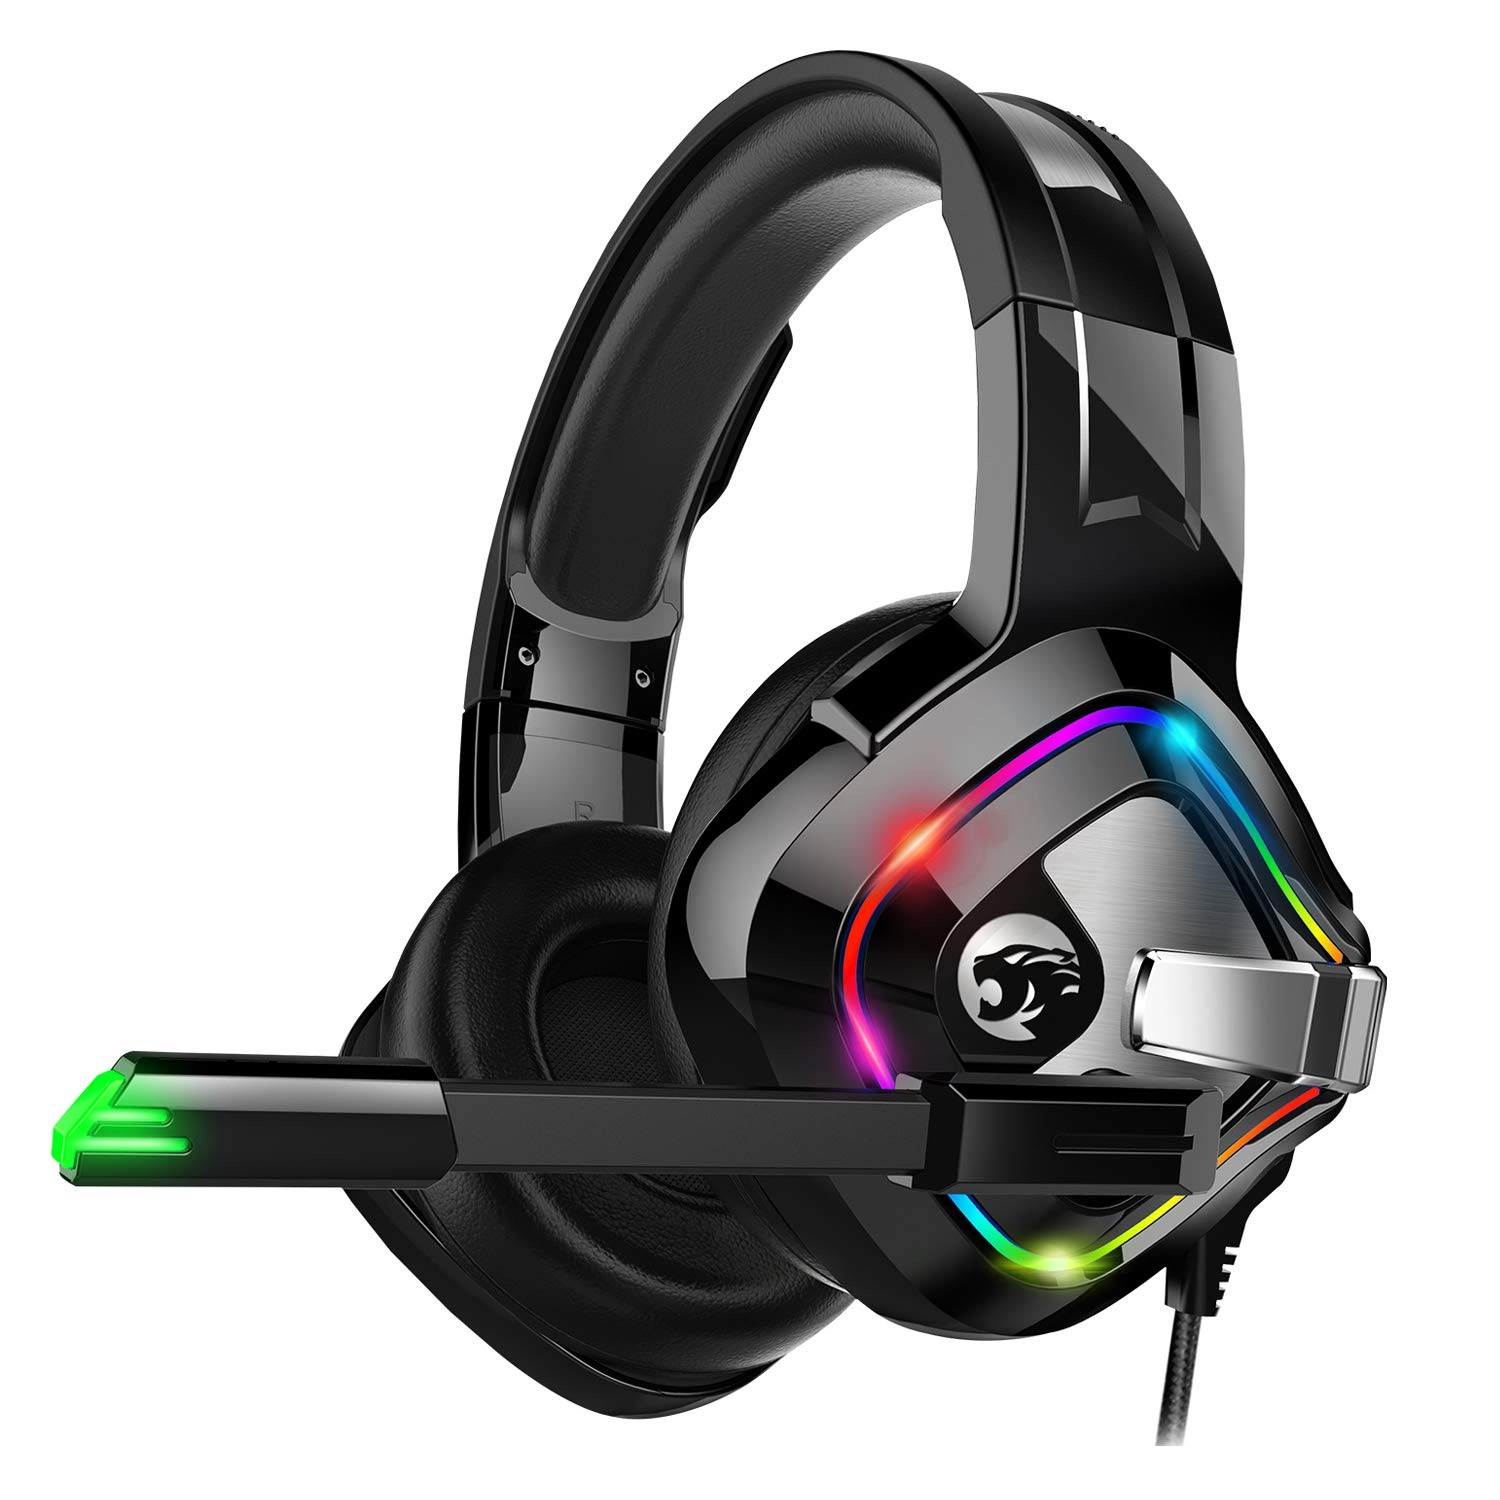 ZIUMIER Gaming Headset Xbox One Headset, PS4 Headset with Noise Canceling Mic and RGB Light, PC Headset with Bass Surround Sound, Over Ear Headphones for PC, PS4, Xbox One, Laptop by ZIUMIER